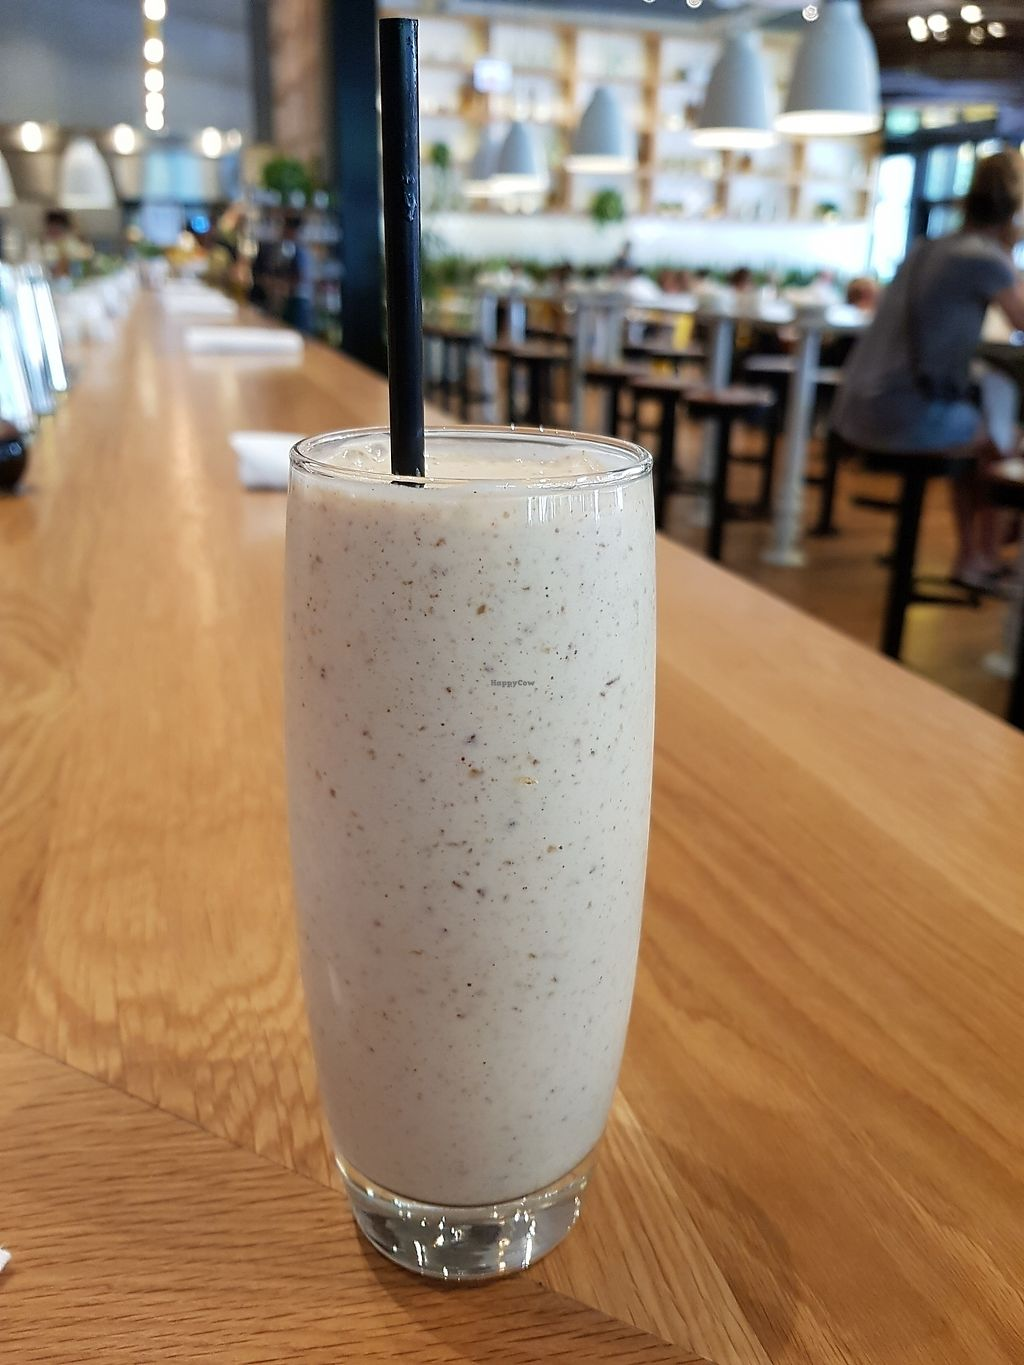 """Photo of True Food Kitchen  by <a href=""""/members/profile/timruddell"""">timruddell</a> <br/>Banana, almond butter, almond milk, and date smoothie <br/> July 10, 2017  - <a href='/contact/abuse/image/86255/278904'>Report</a>"""